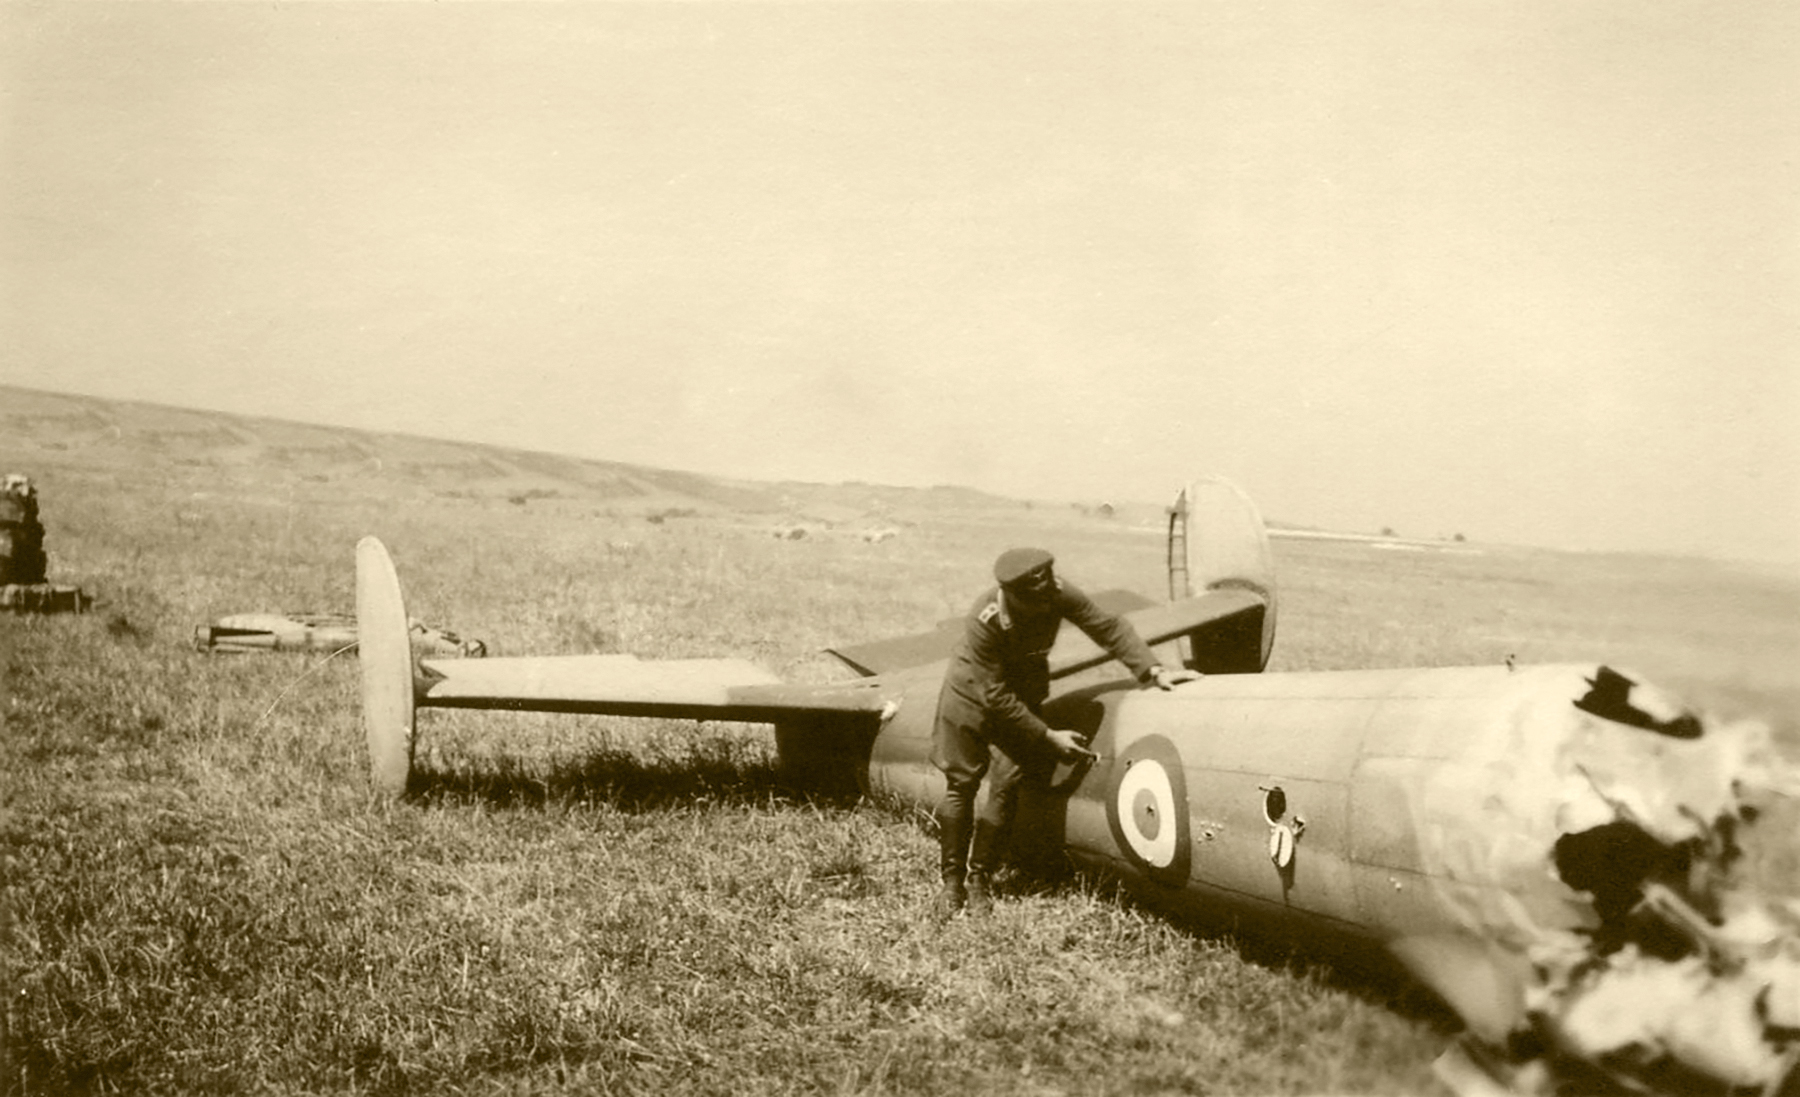 French Airforce Potez 630 shot down during the air war over France 1940 ebay 02